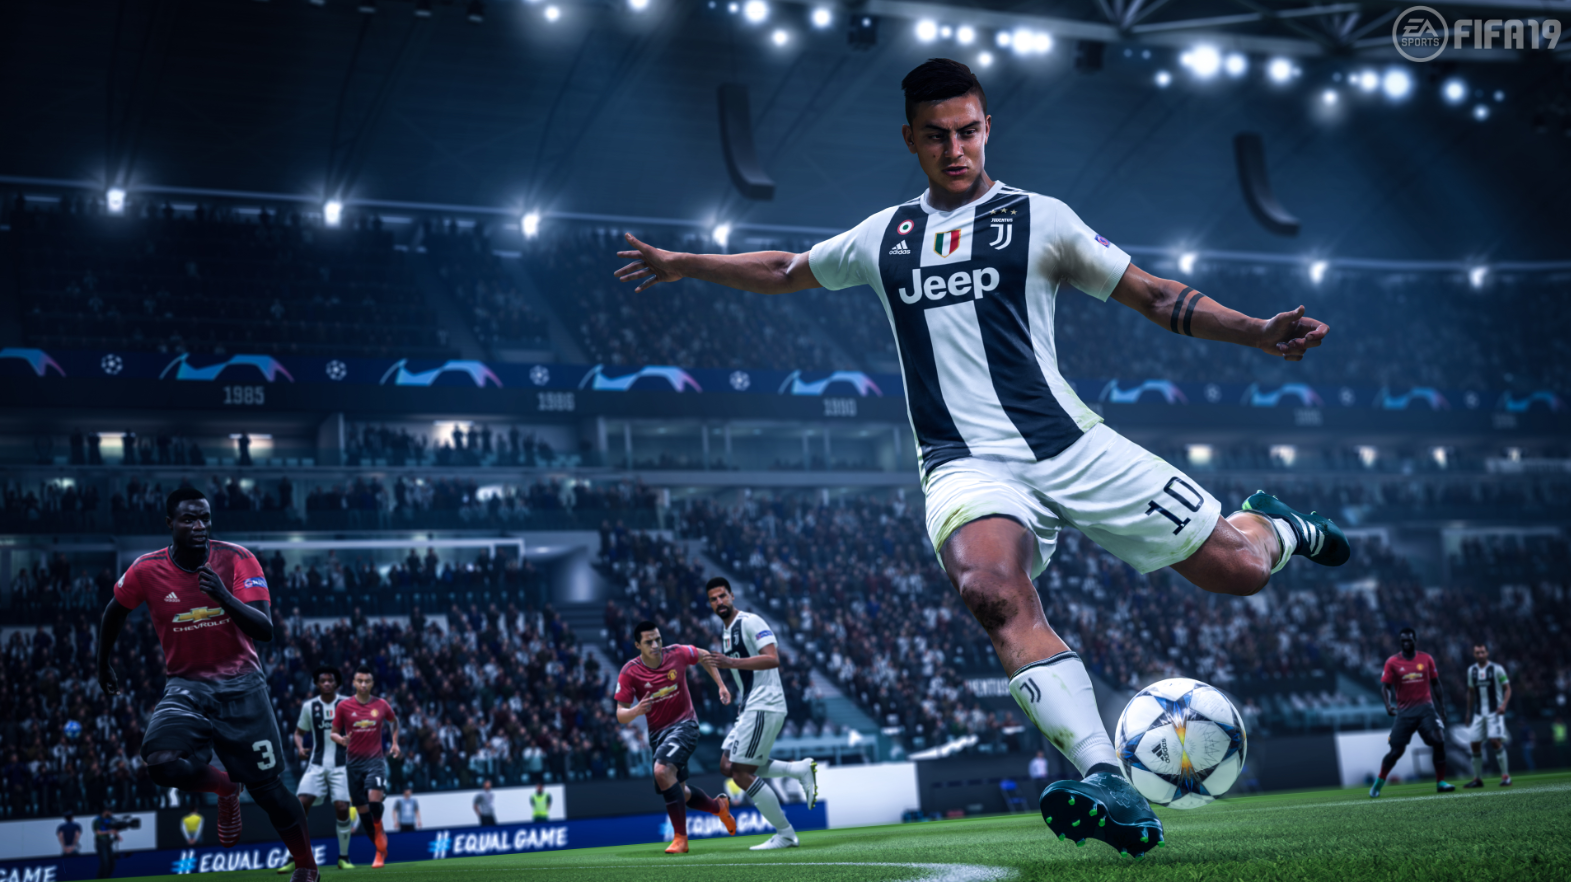 EA has continued to update the game based on gamers' feedback, and firmly denies scripting features in their game